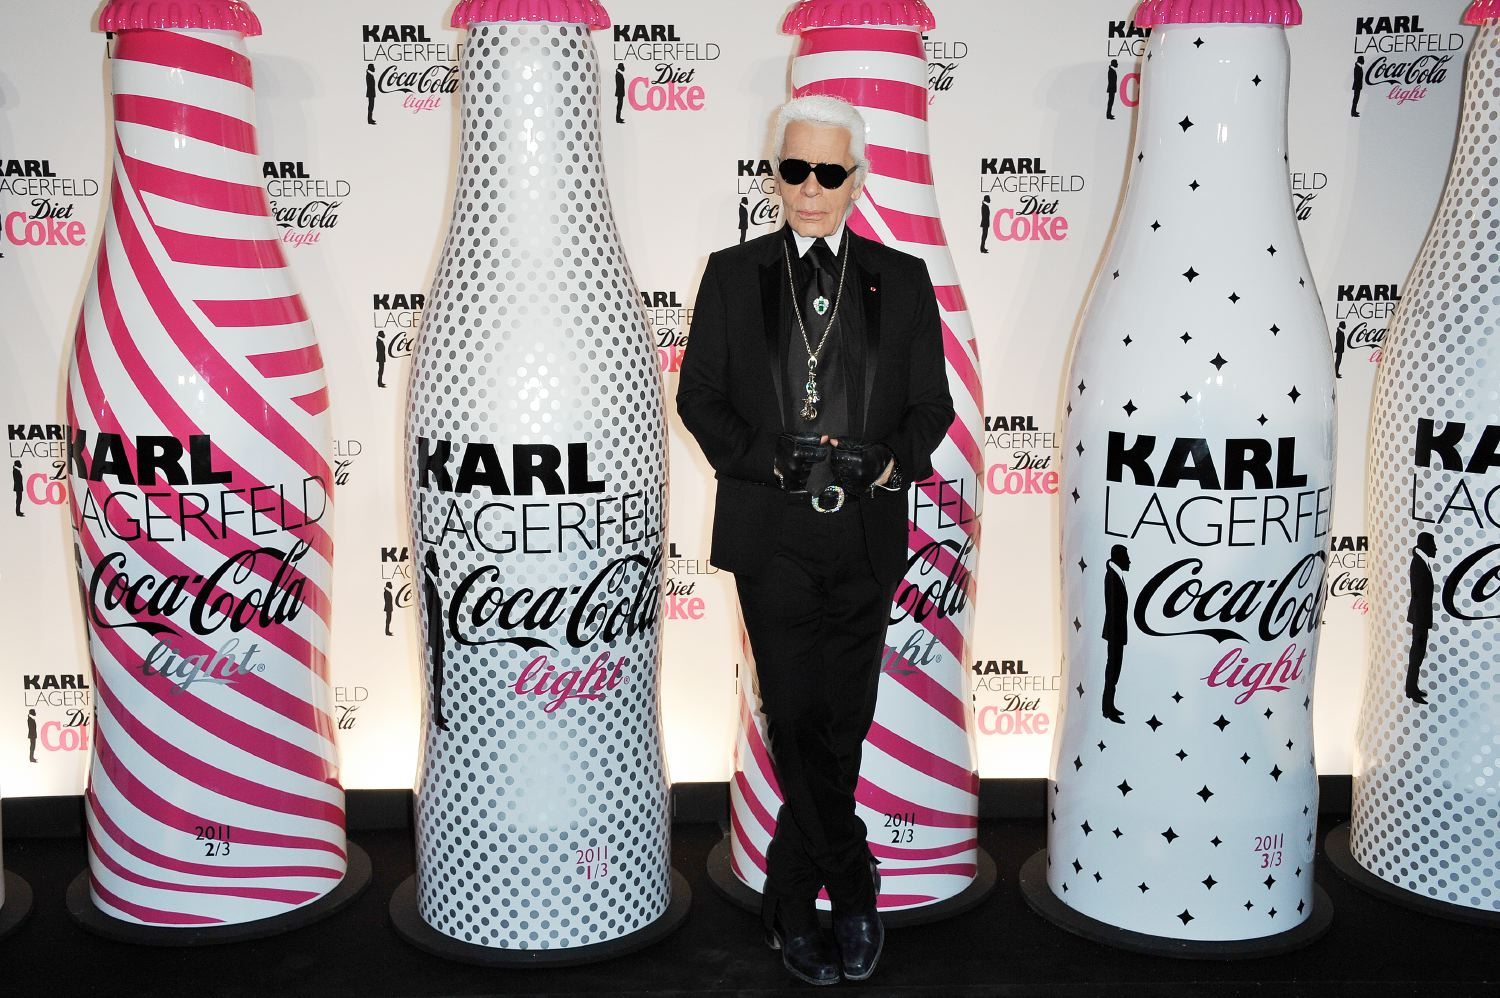 karl lagerfeld diet coke launch paris 2011